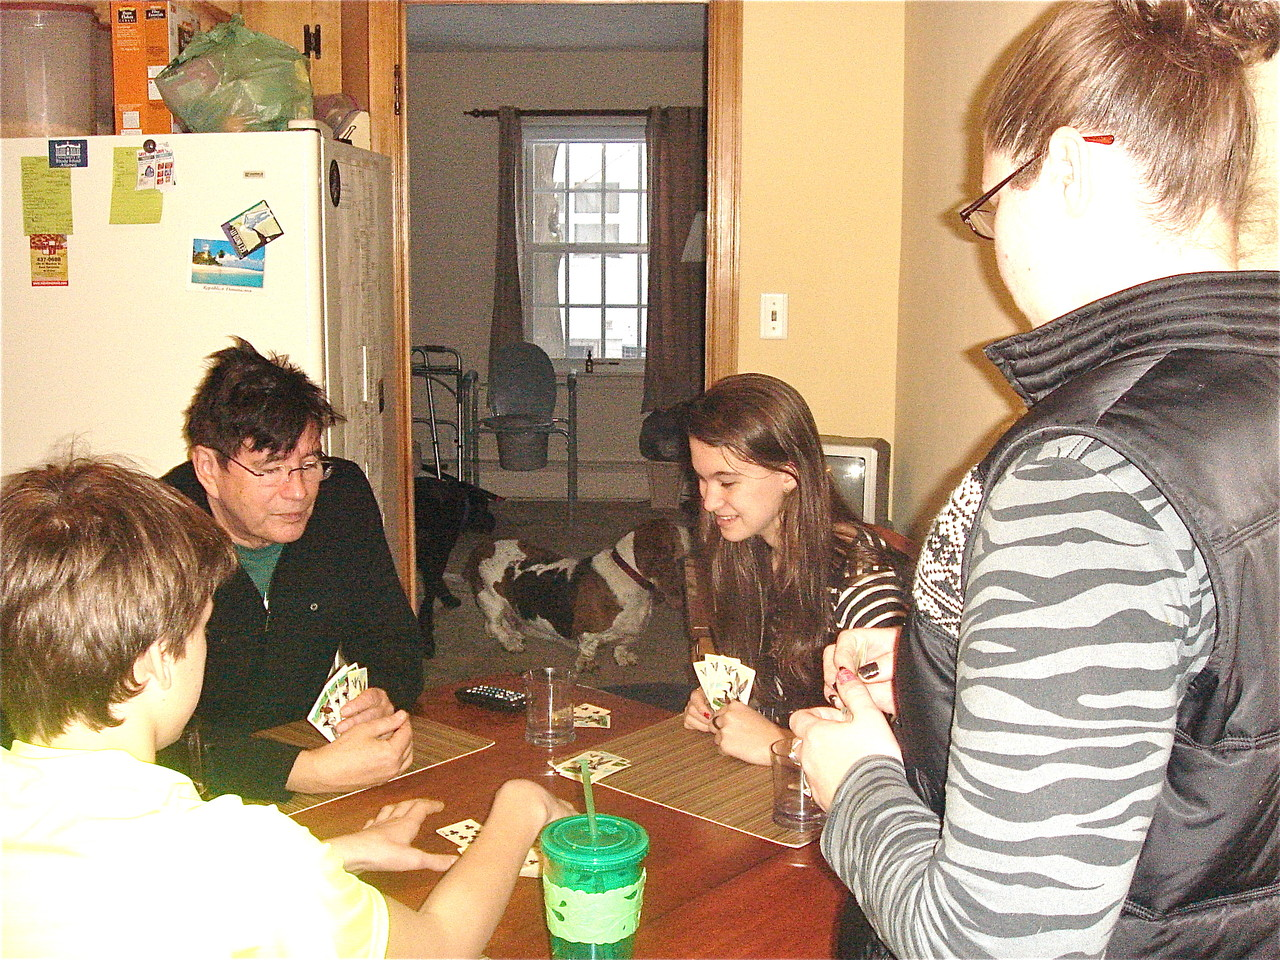 Learning how to play the Dubuque card game Euchre...